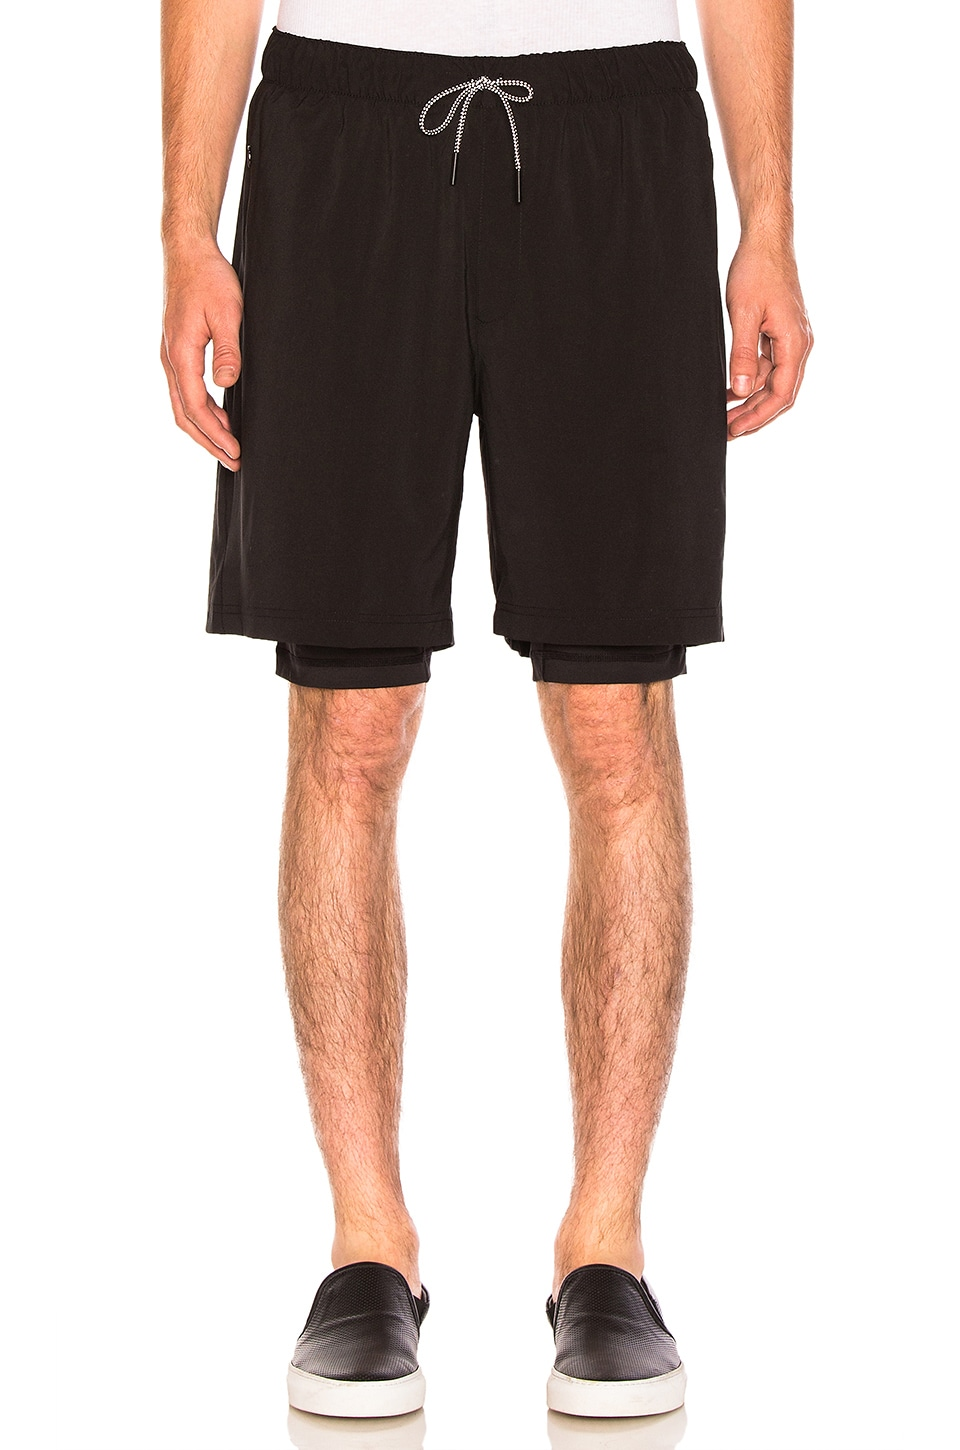 x Stampd Shorts by Puma Select